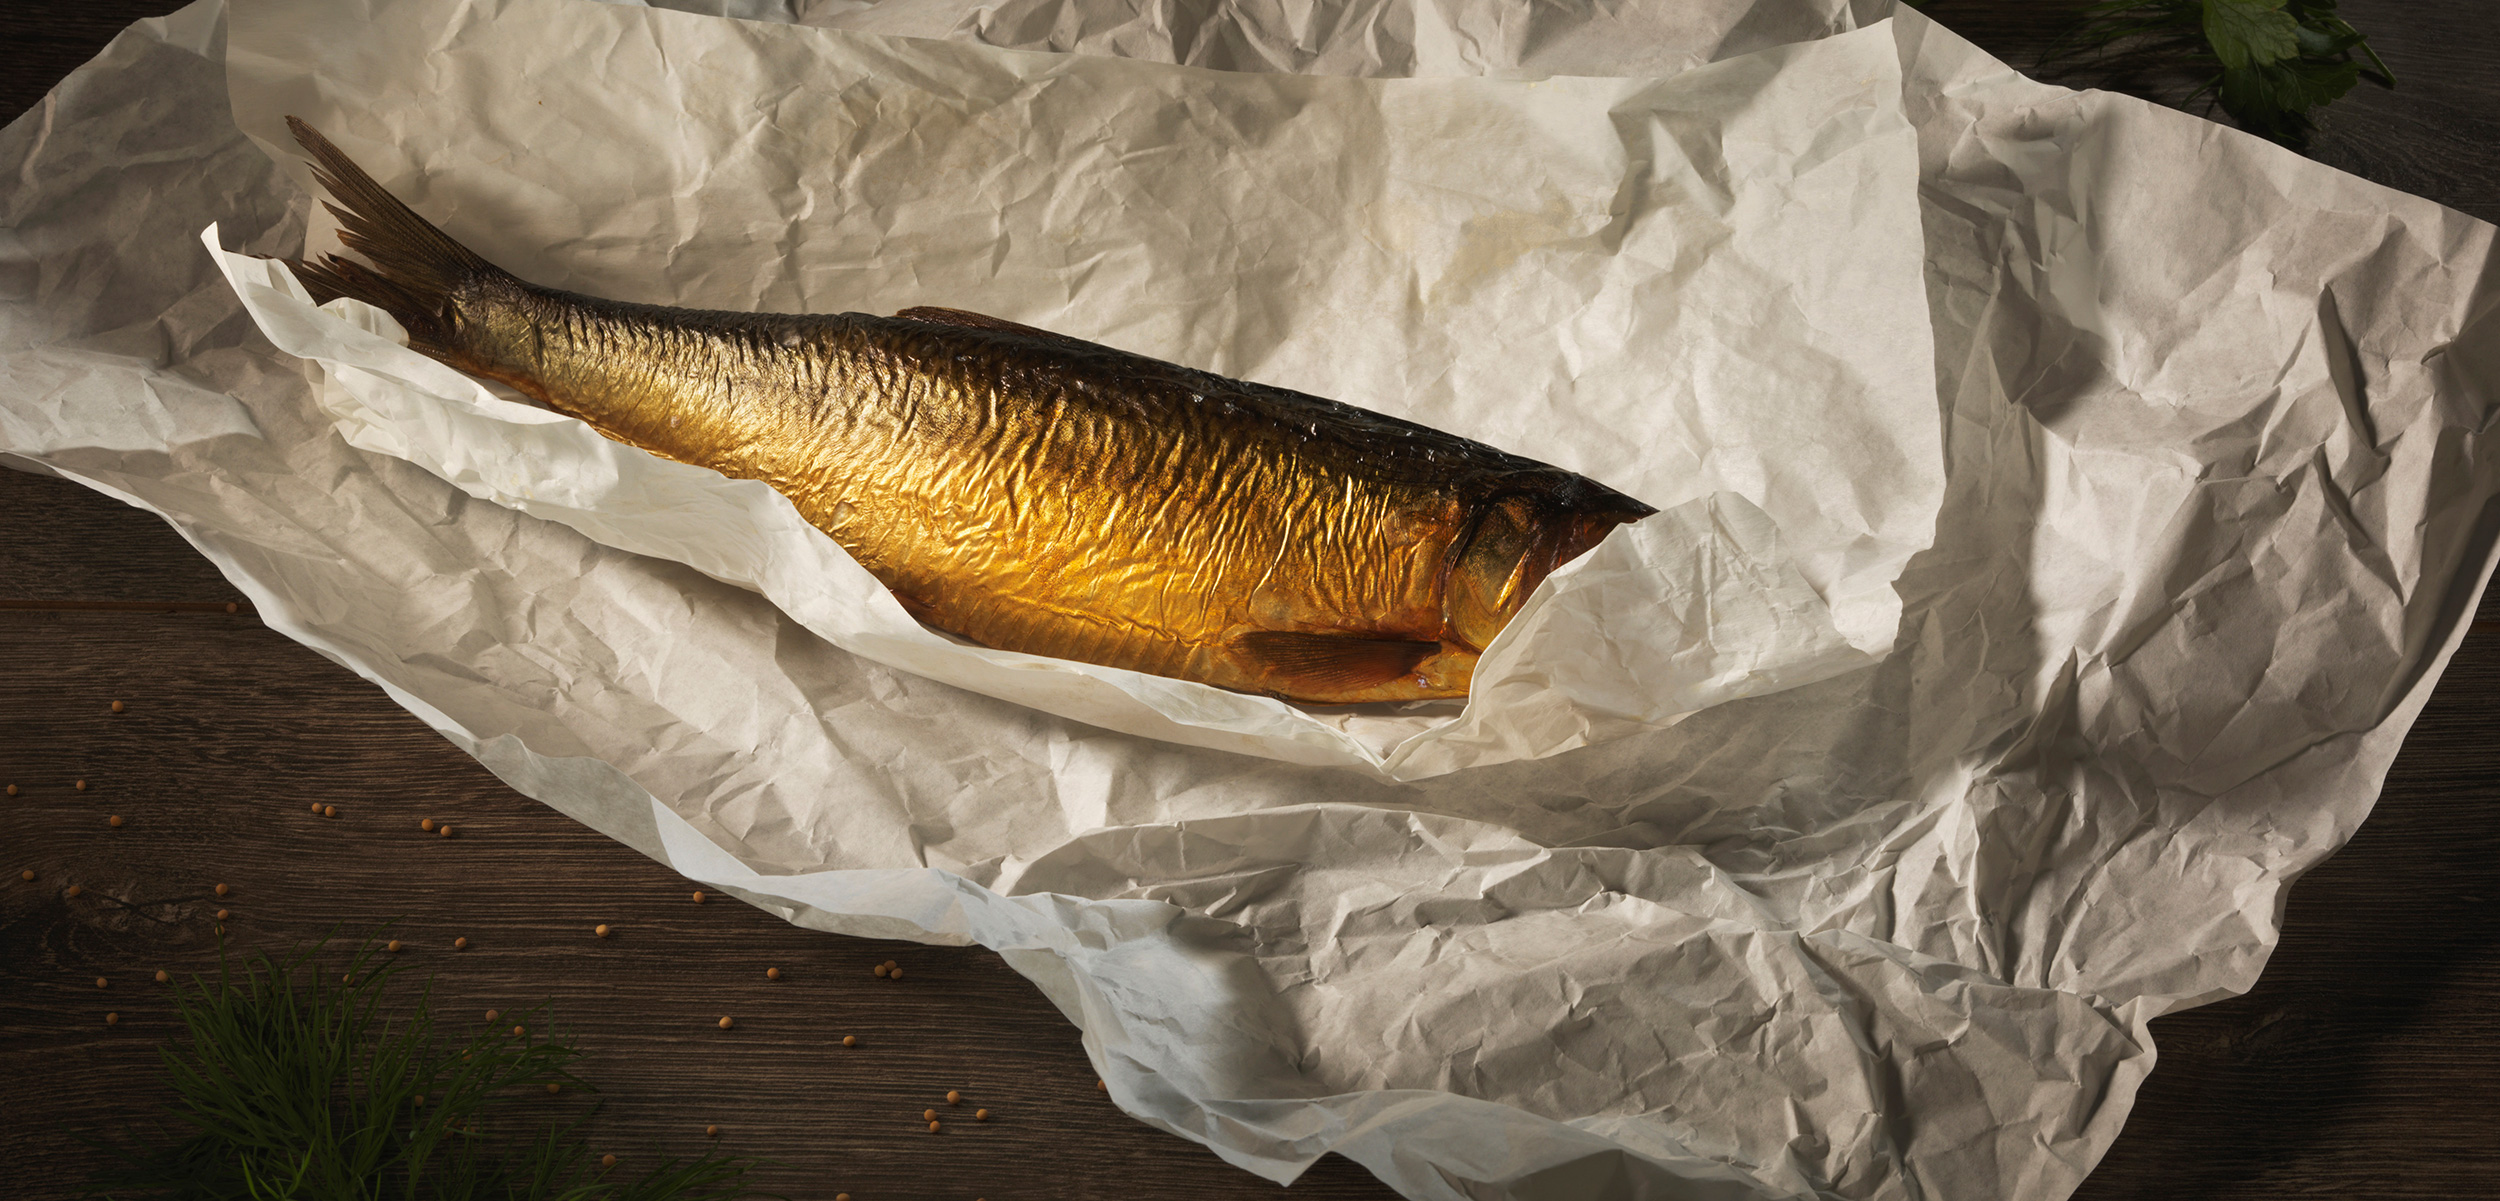 A bloater, the quintessential English herring dish. Photo by Calle Hackenberg/Westend61/Corbis